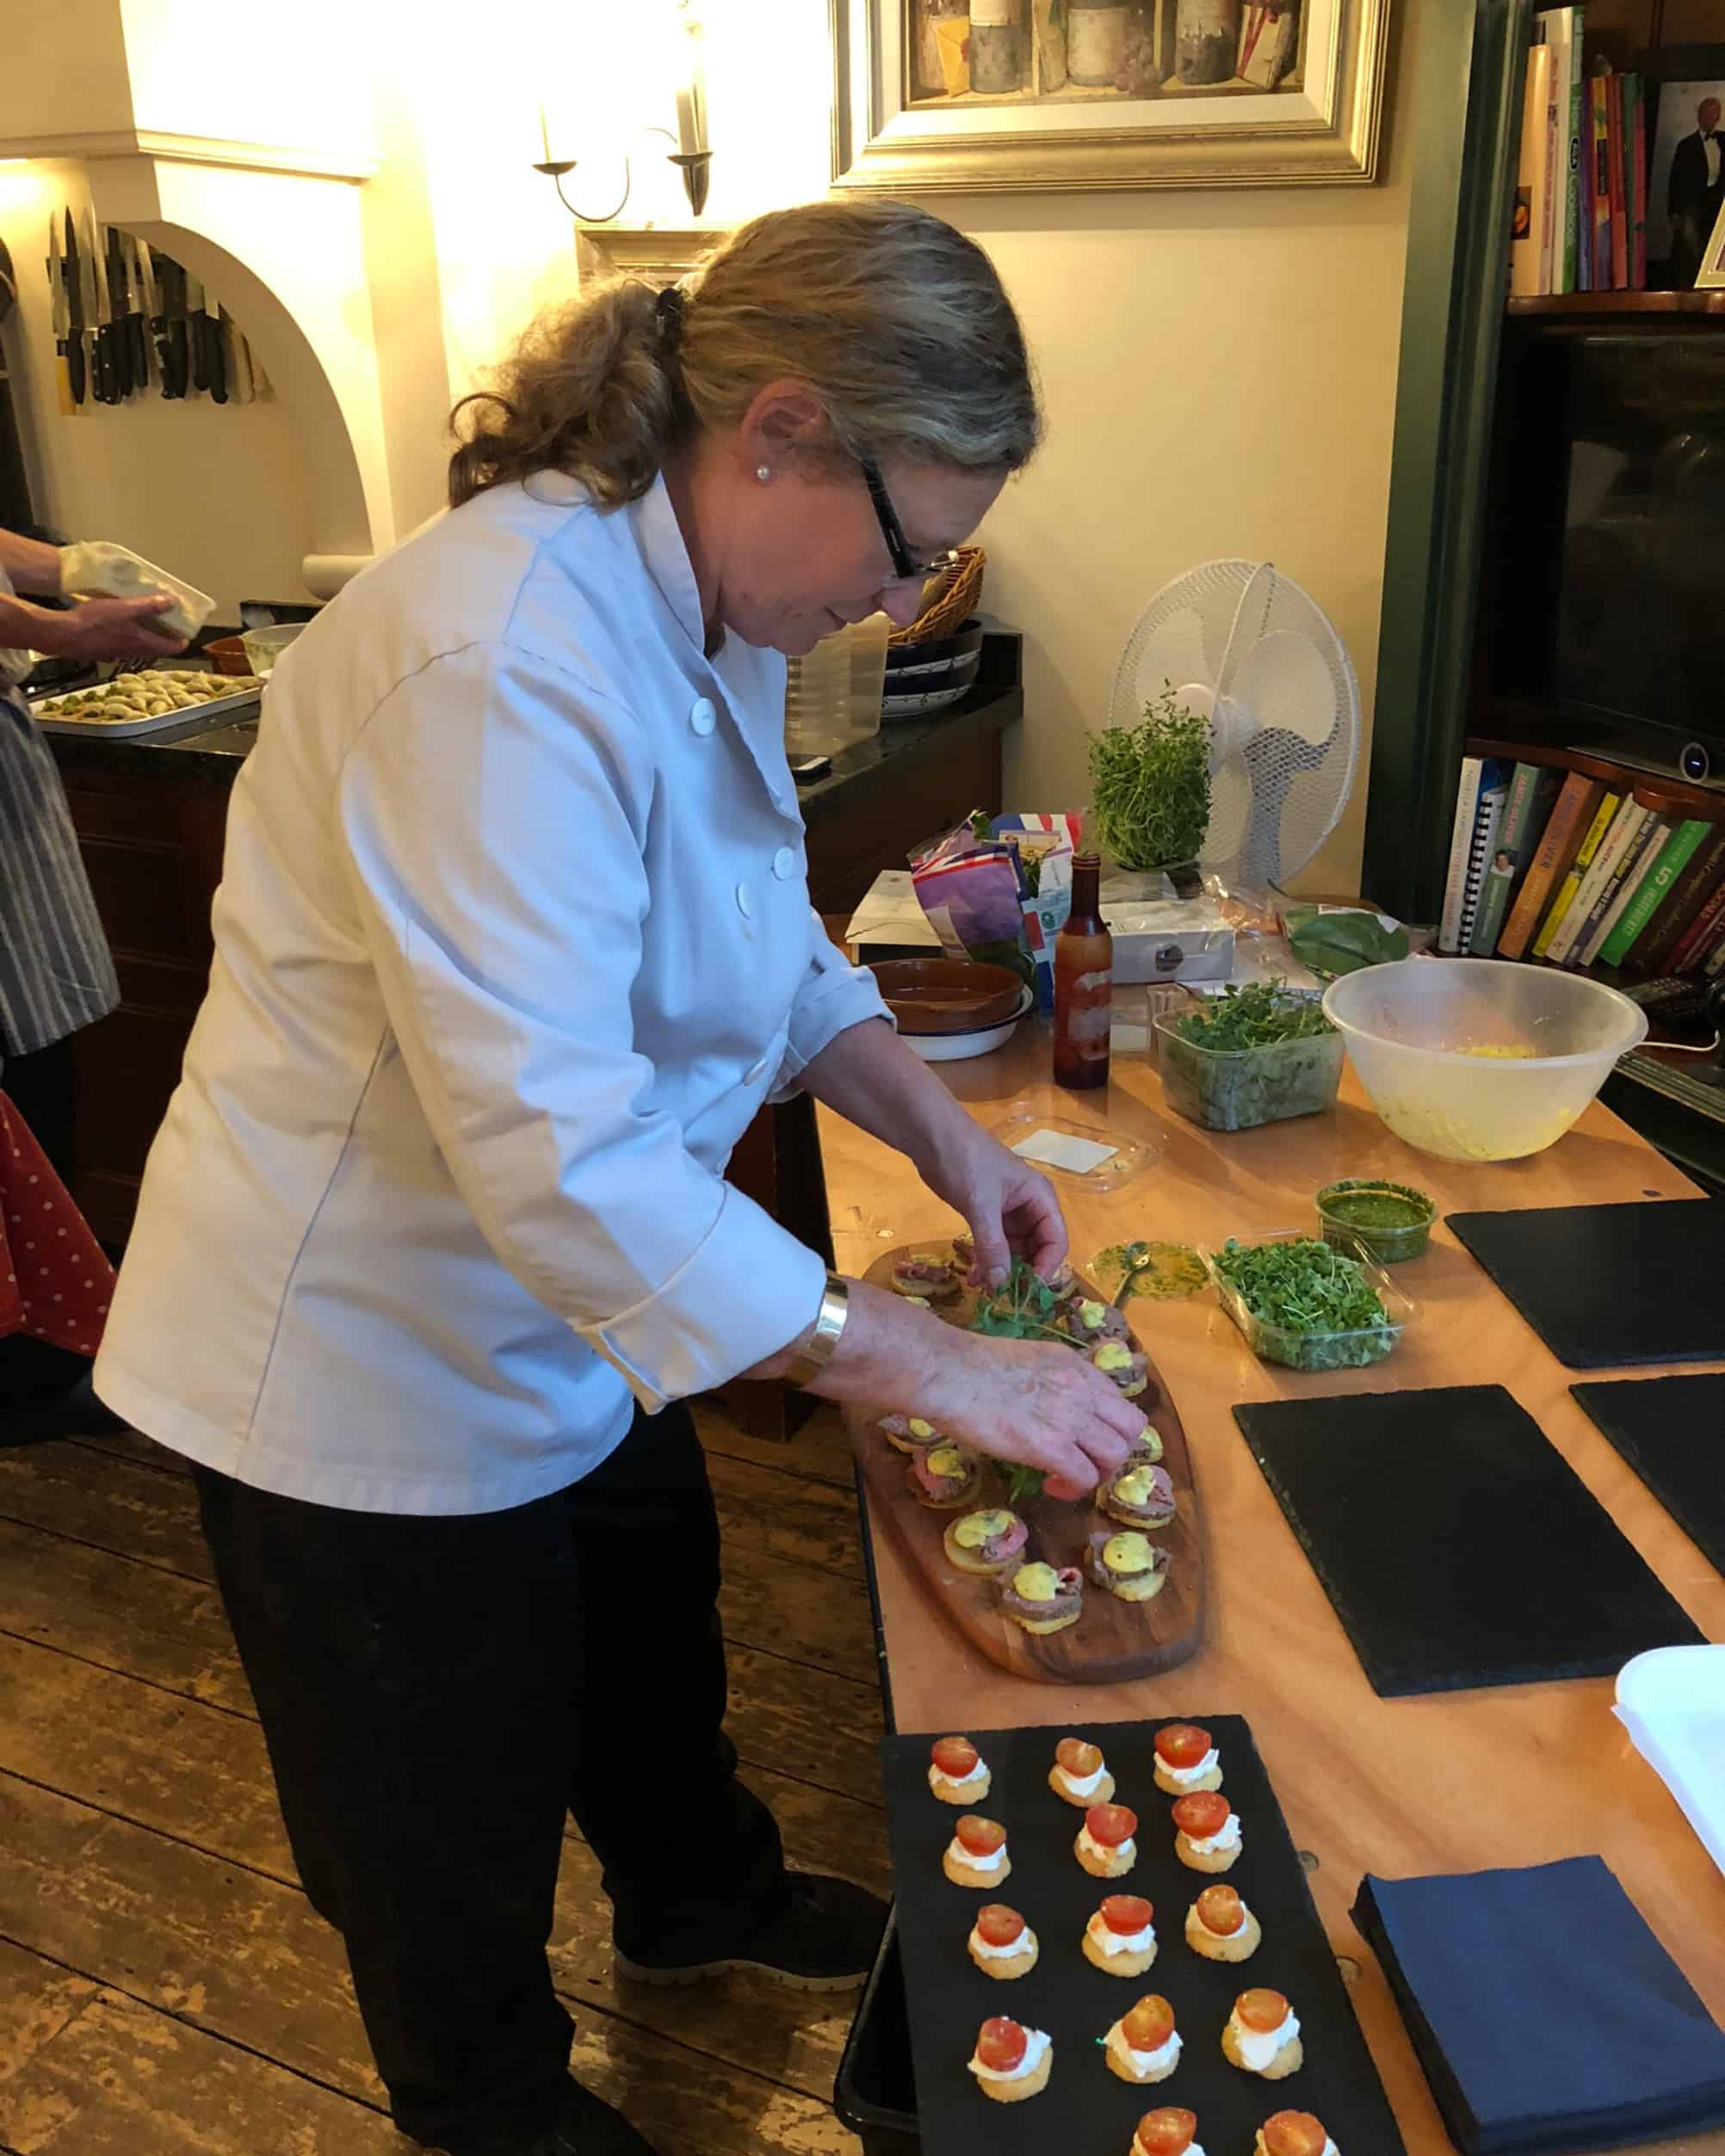 Chef preparing canapes for a party at home